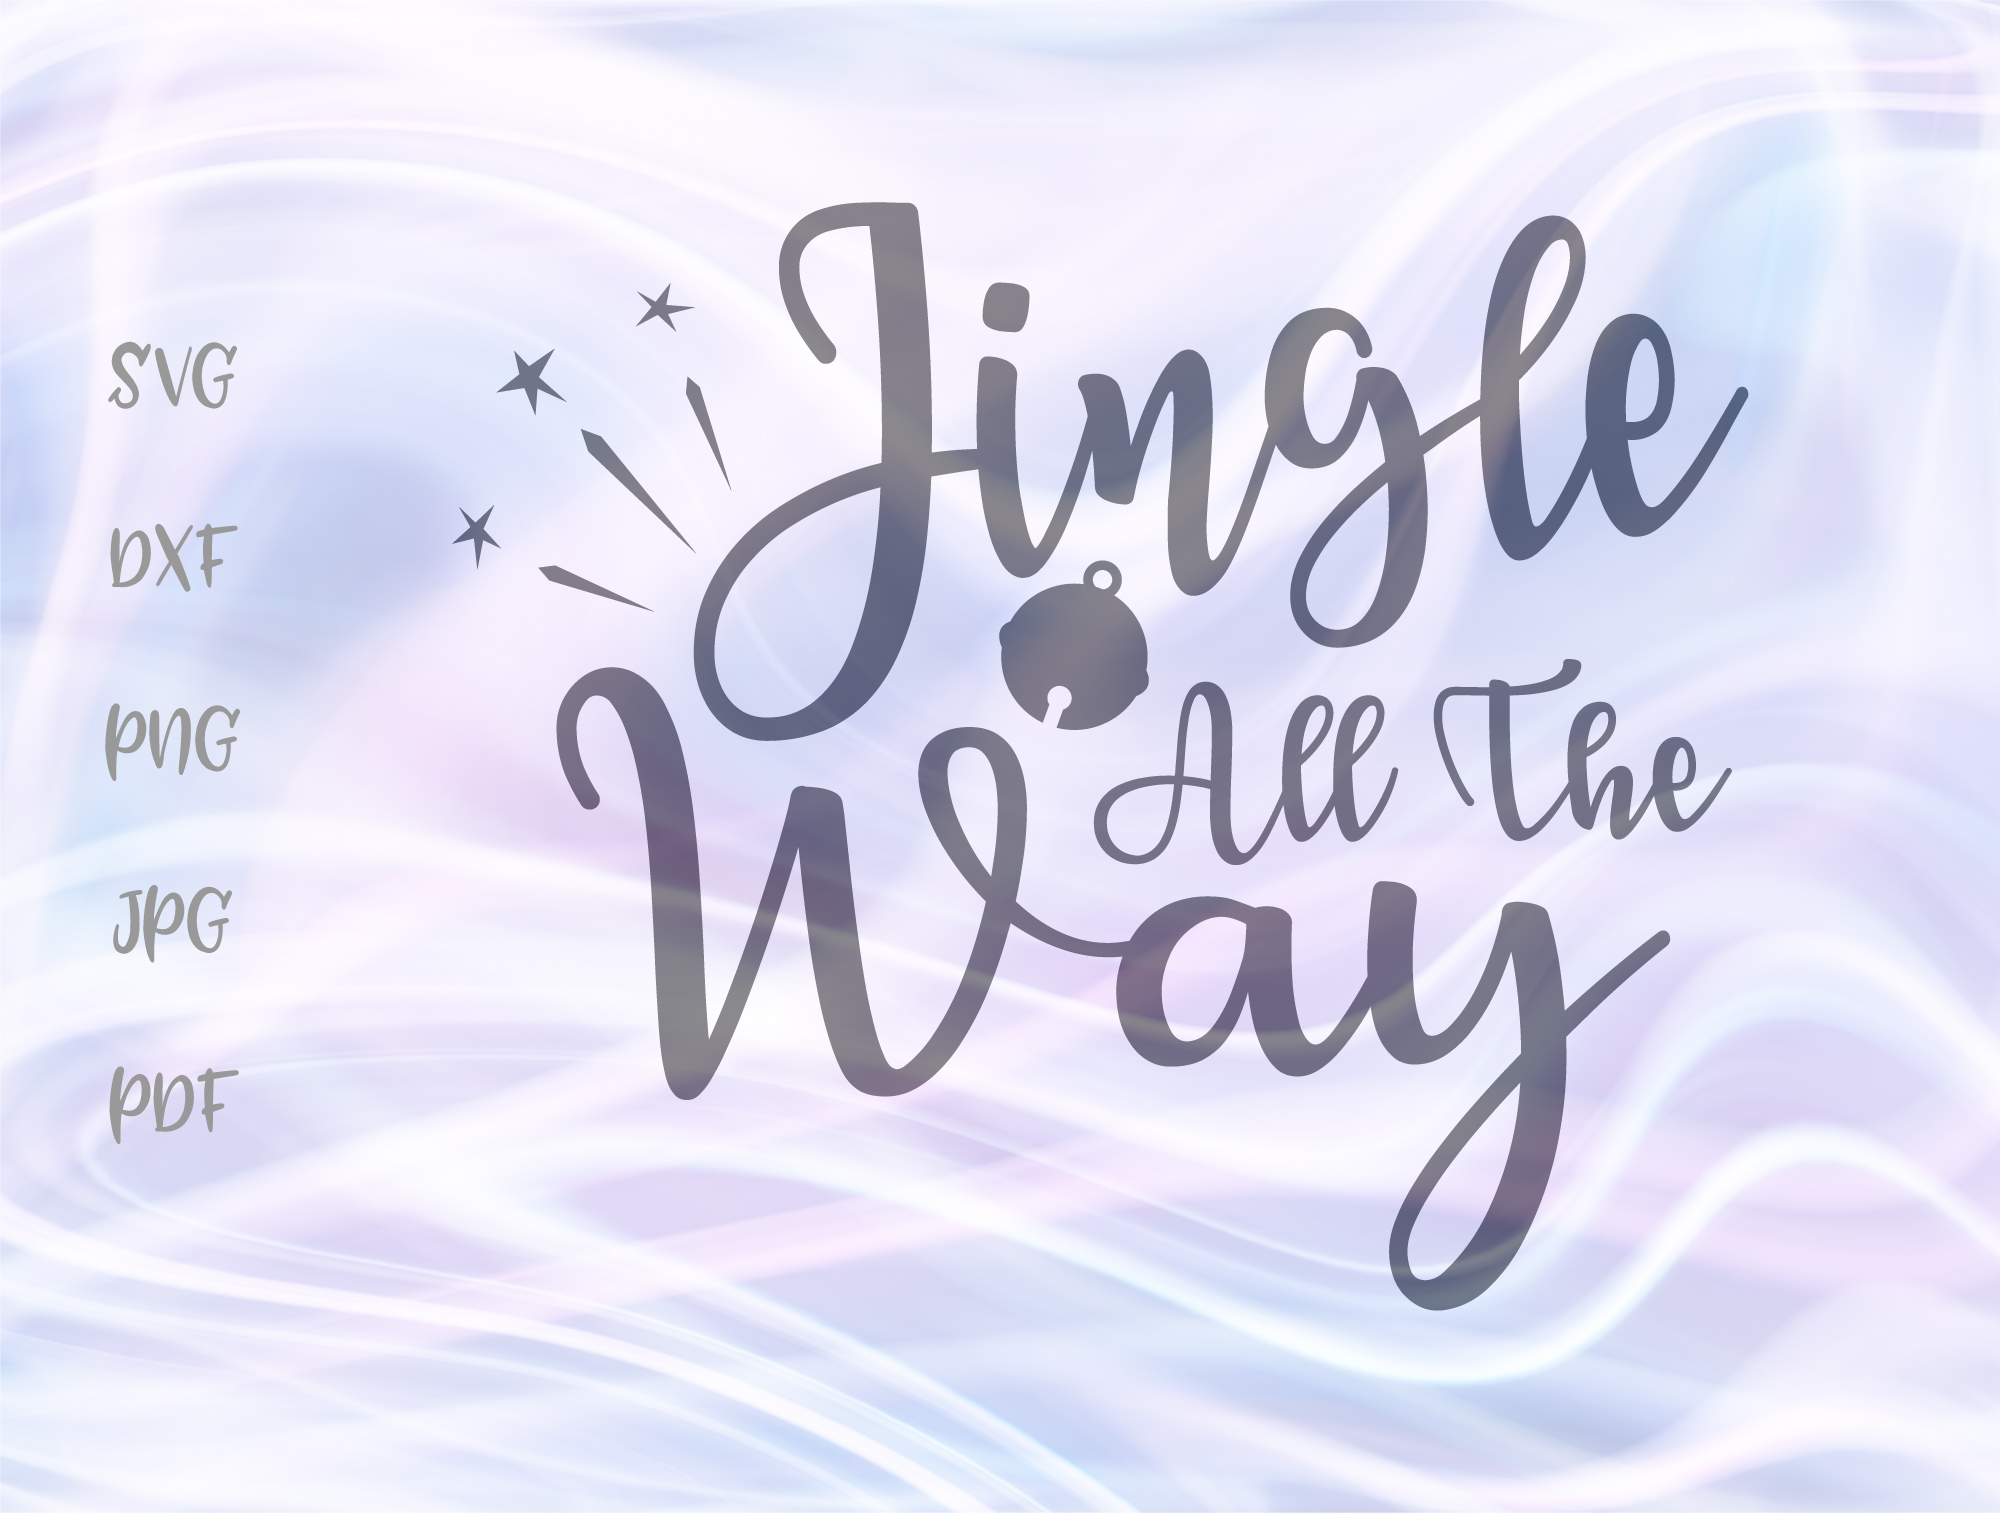 Download Free Jingle All The Way Christmas Bells Song Graphic By Digitals By for Cricut Explore, Silhouette and other cutting machines.